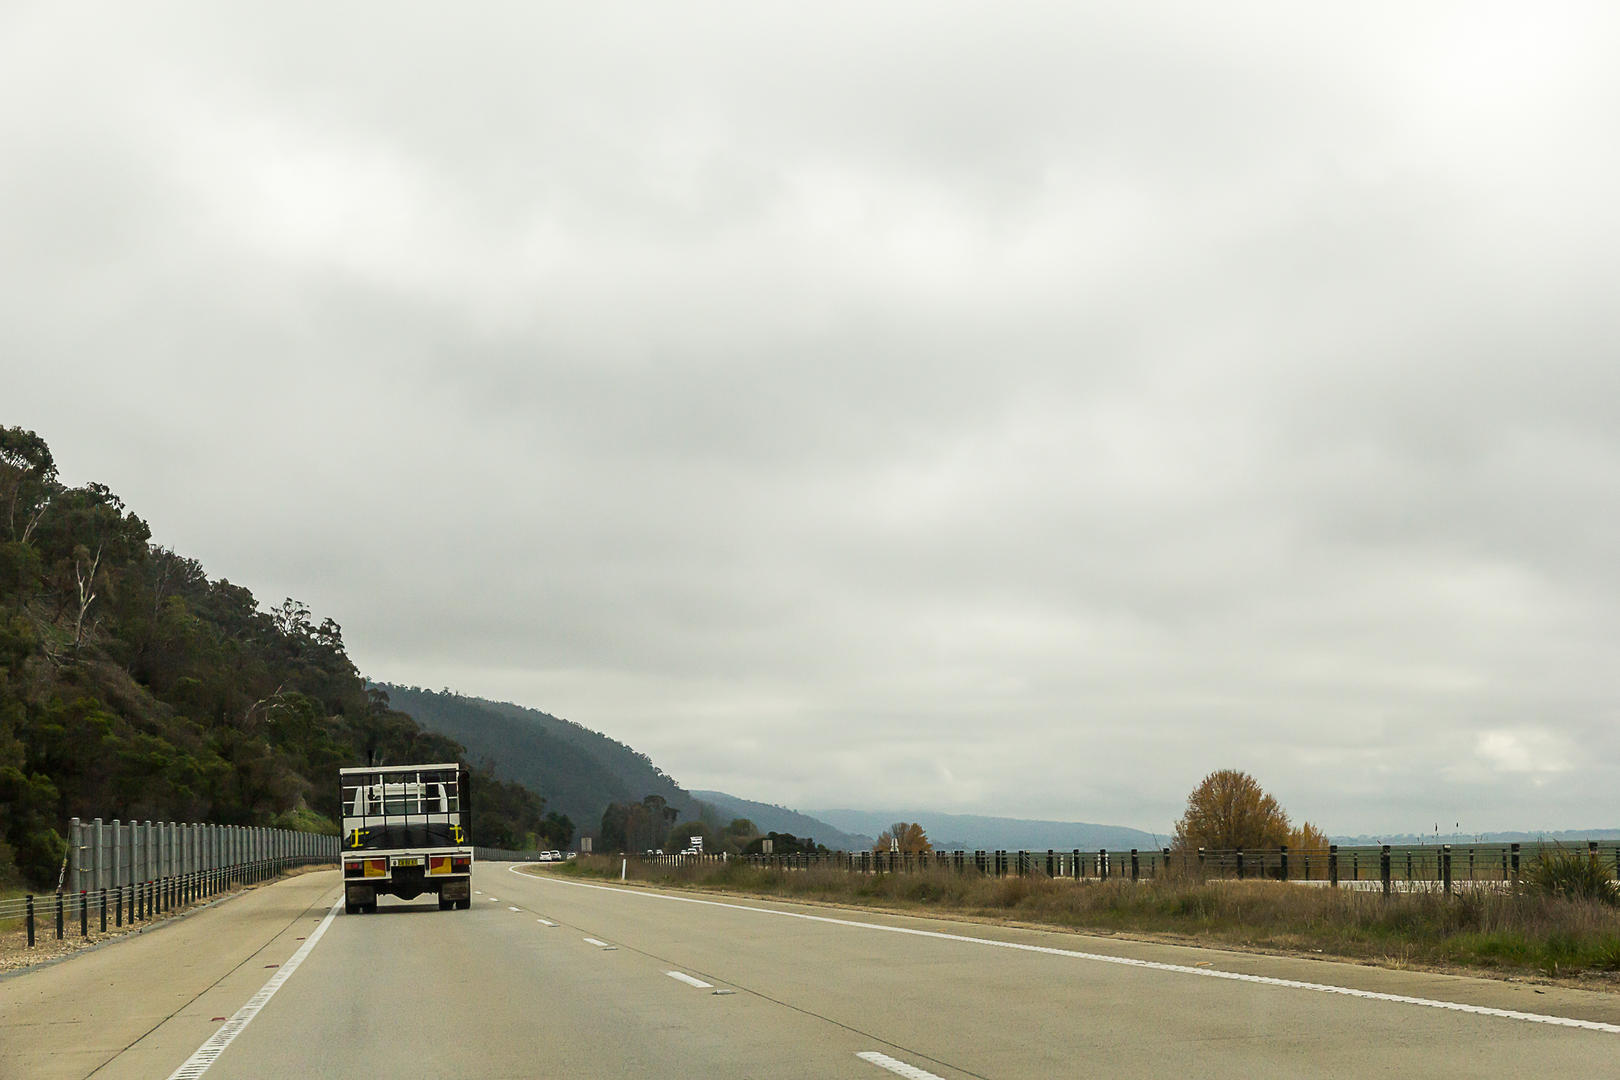 The Highway 15